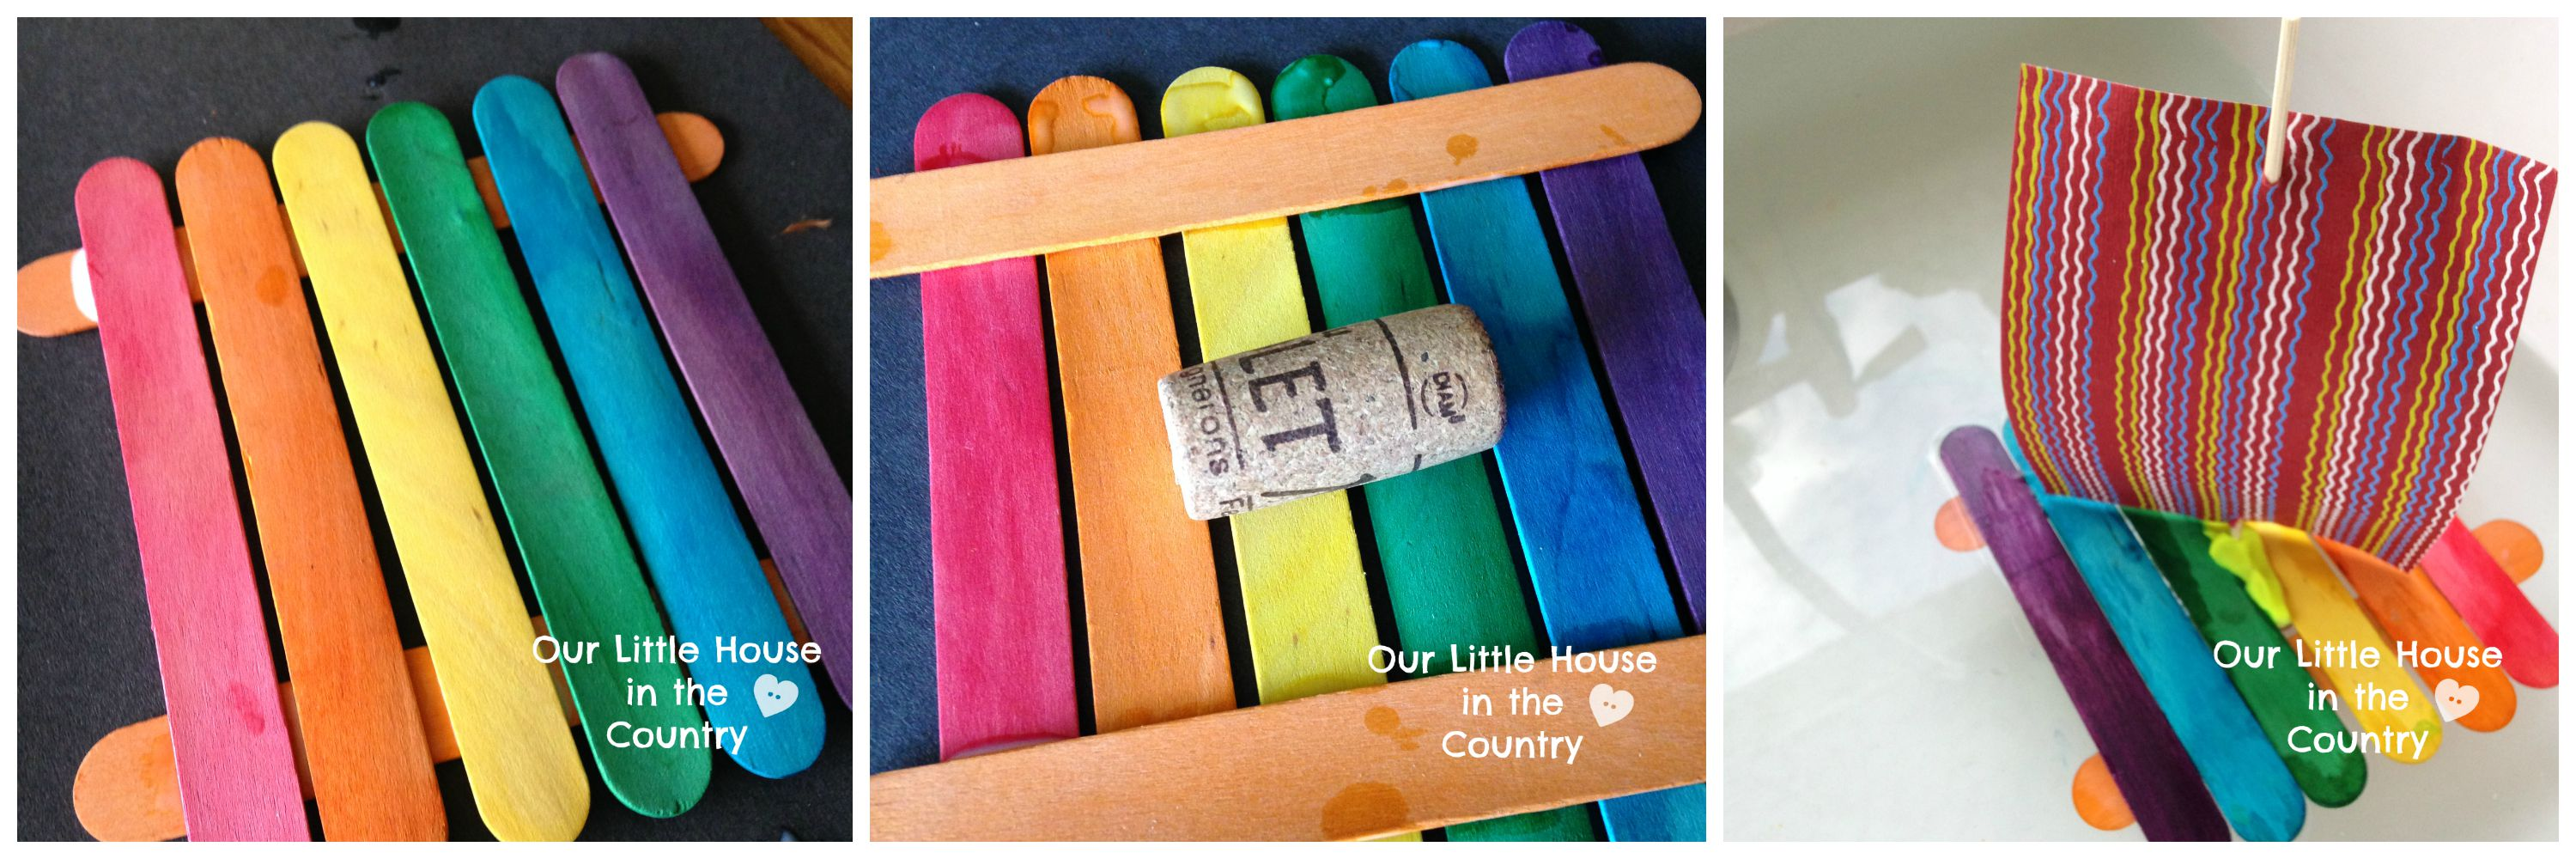 Ice Lolly Sticks Rafts Simple Wine Cork Crafts For Kids Our